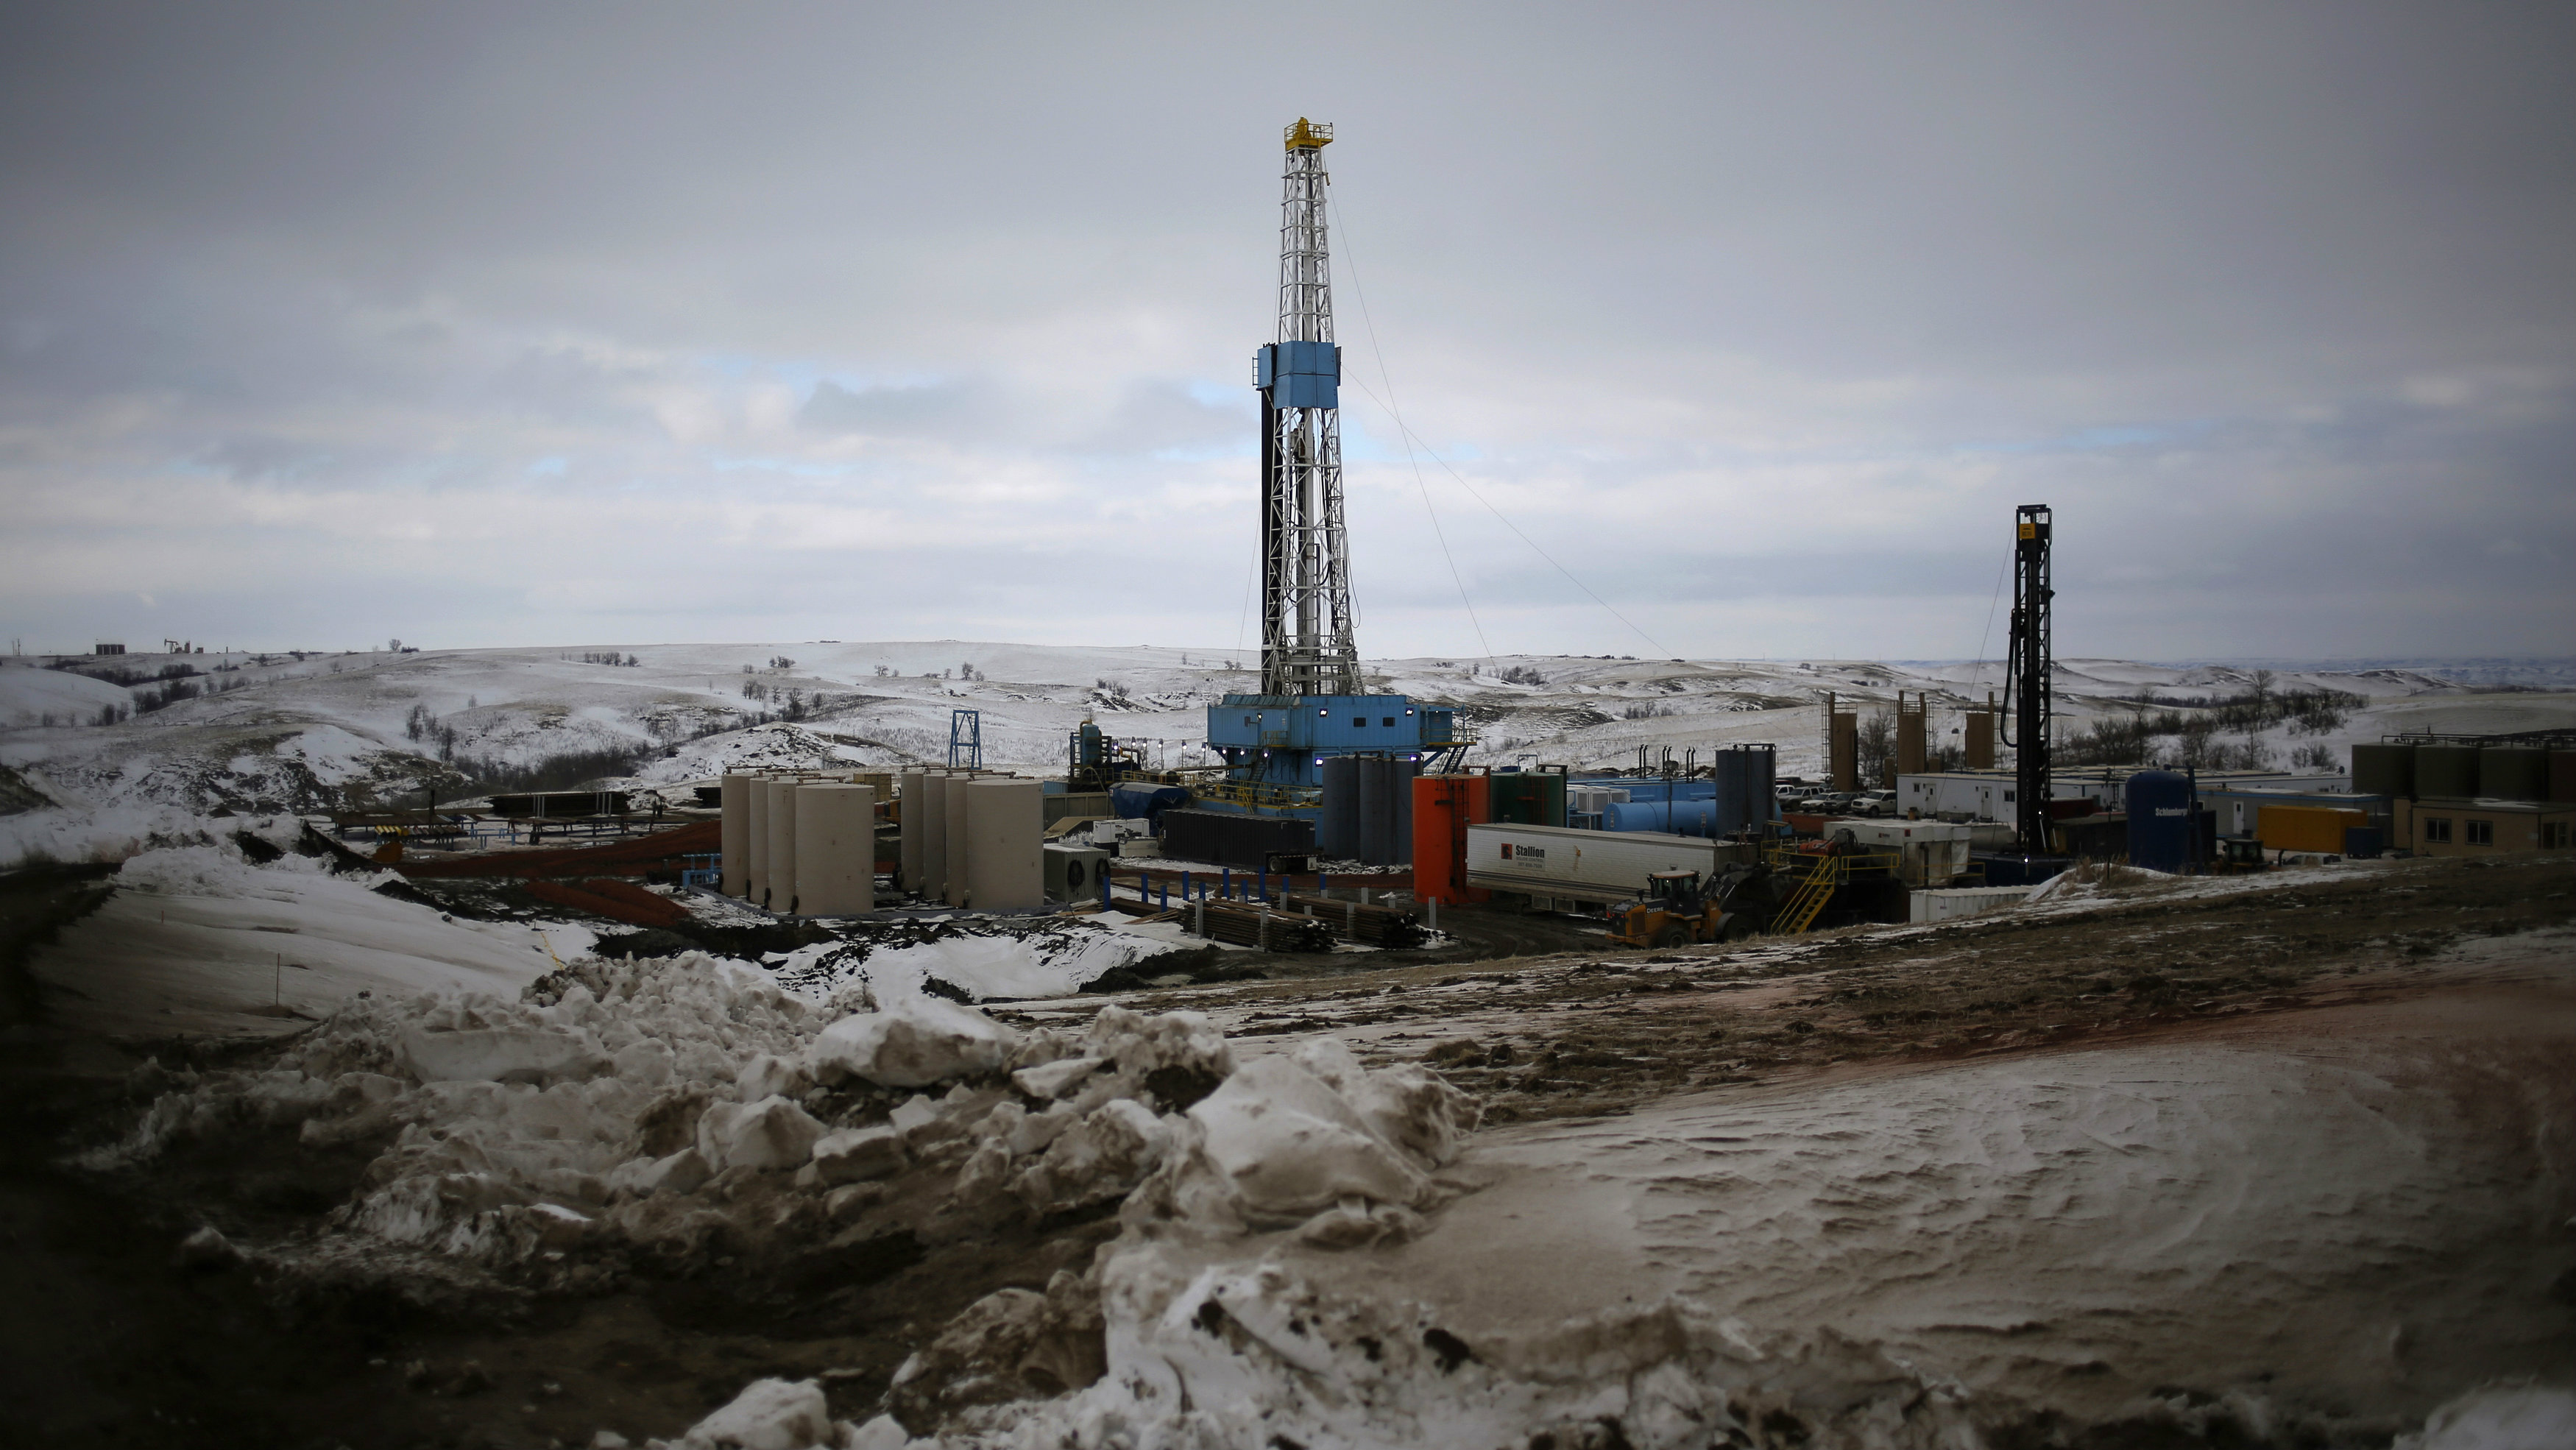 An oil derrick is seen at a fracking site for extracting oil outside of Williston, North Dakota March 11, 2013. North Dakota's booming oil business has quickly ran up against a serious shortage of housing for the thousands of workers who have poured into the state looking to cash in on the Bakken oil formation that has made North Dakota the second-largest oil-producing state after Texas. Picture taken March 11, 2013. REUTERS/Shannon Stapleton (UNITED STATES - Tags: BUSINESS ENERGY ENVIRONMENT COMMODITIES)